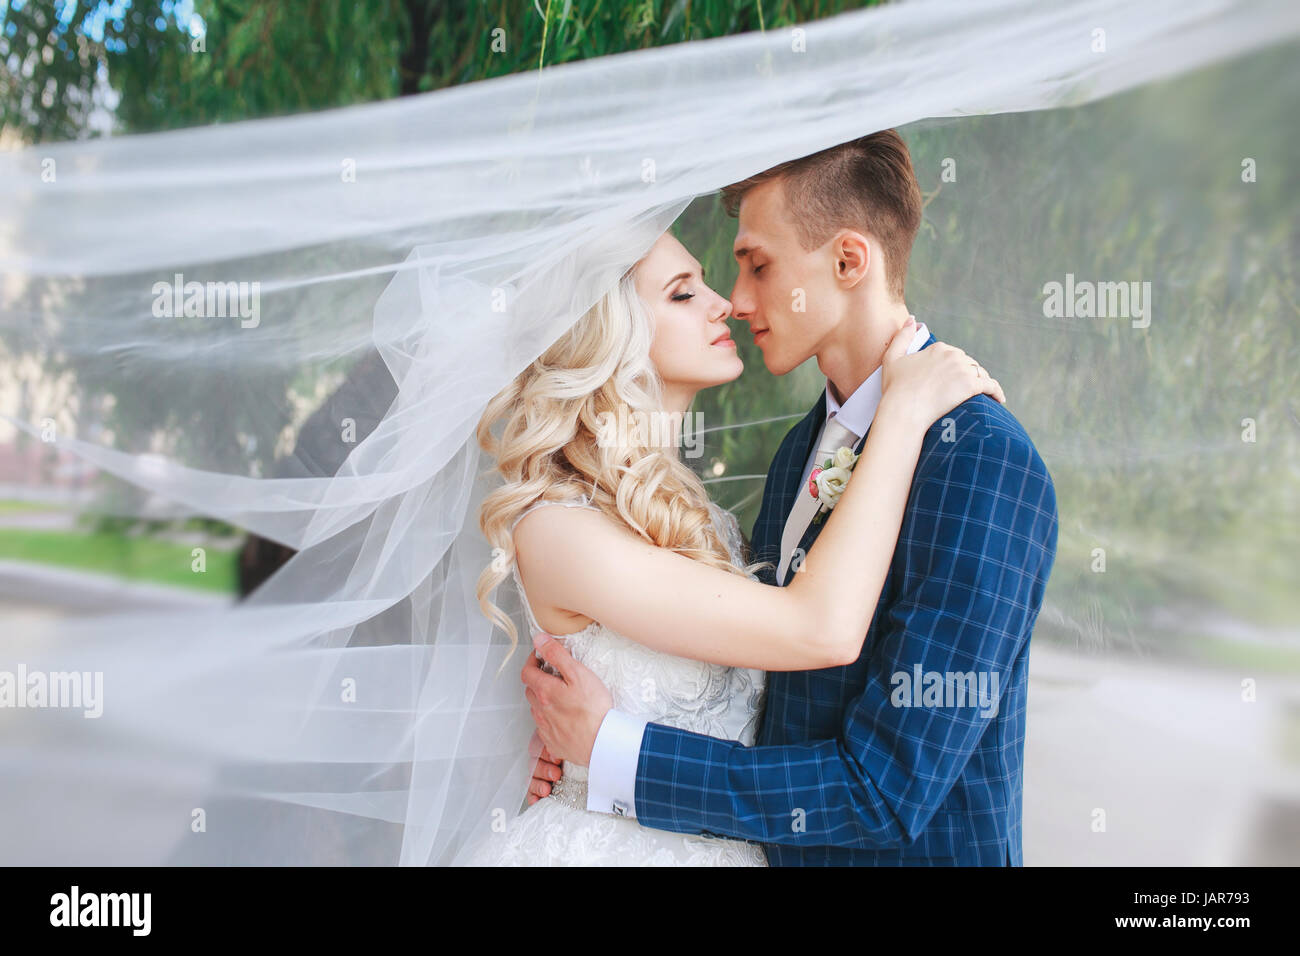 07a5ca794fb Wedding couple kissing covered veil .Wedding romantic couple is hugging  each other. Beauty bride with groom